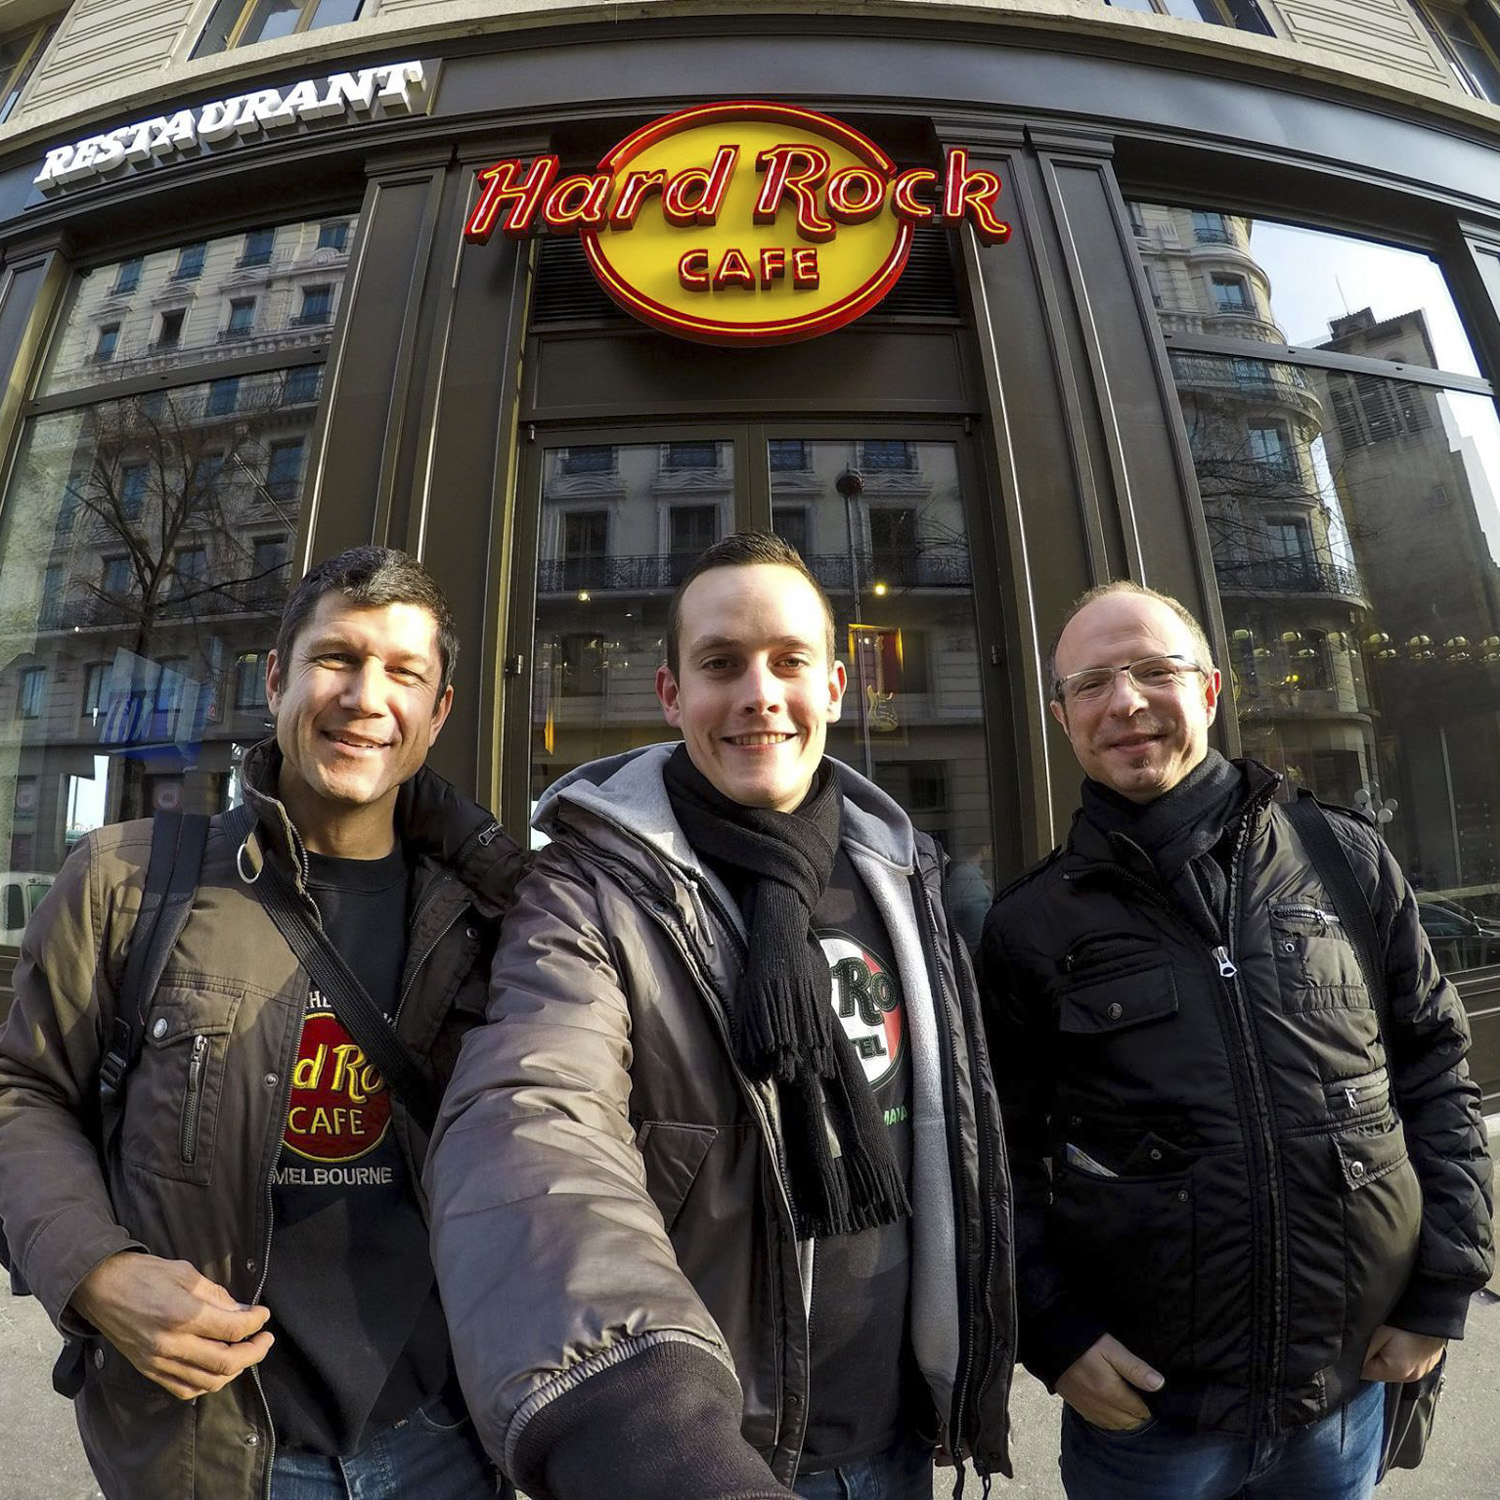 Hard Rock Cafe Lyon - visited in 2016